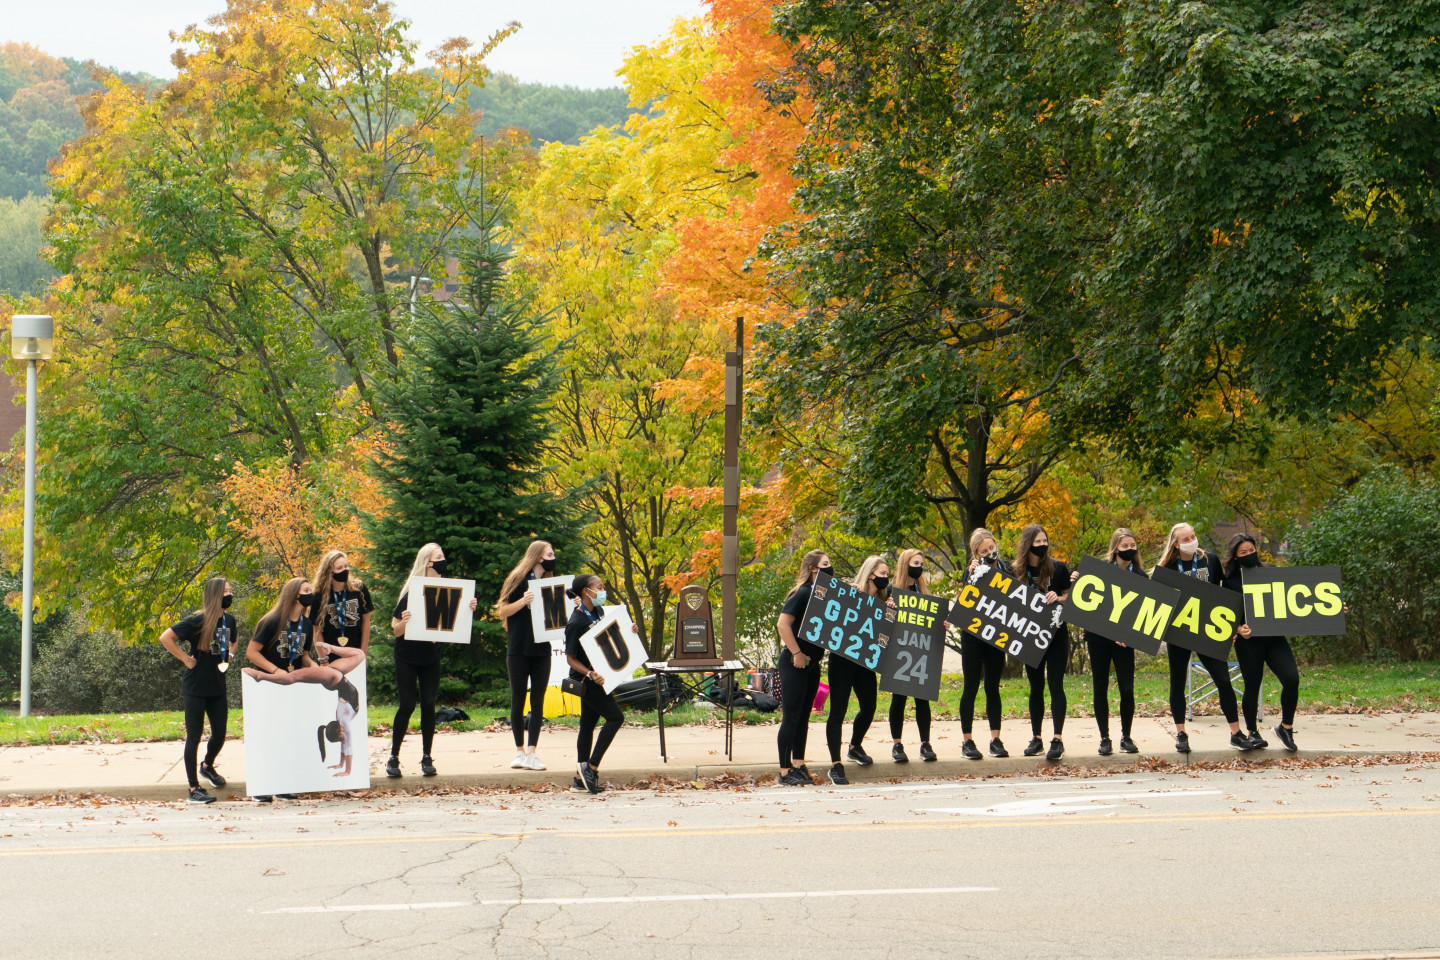 The WMU gymnastics team holds signs along the side of the road.